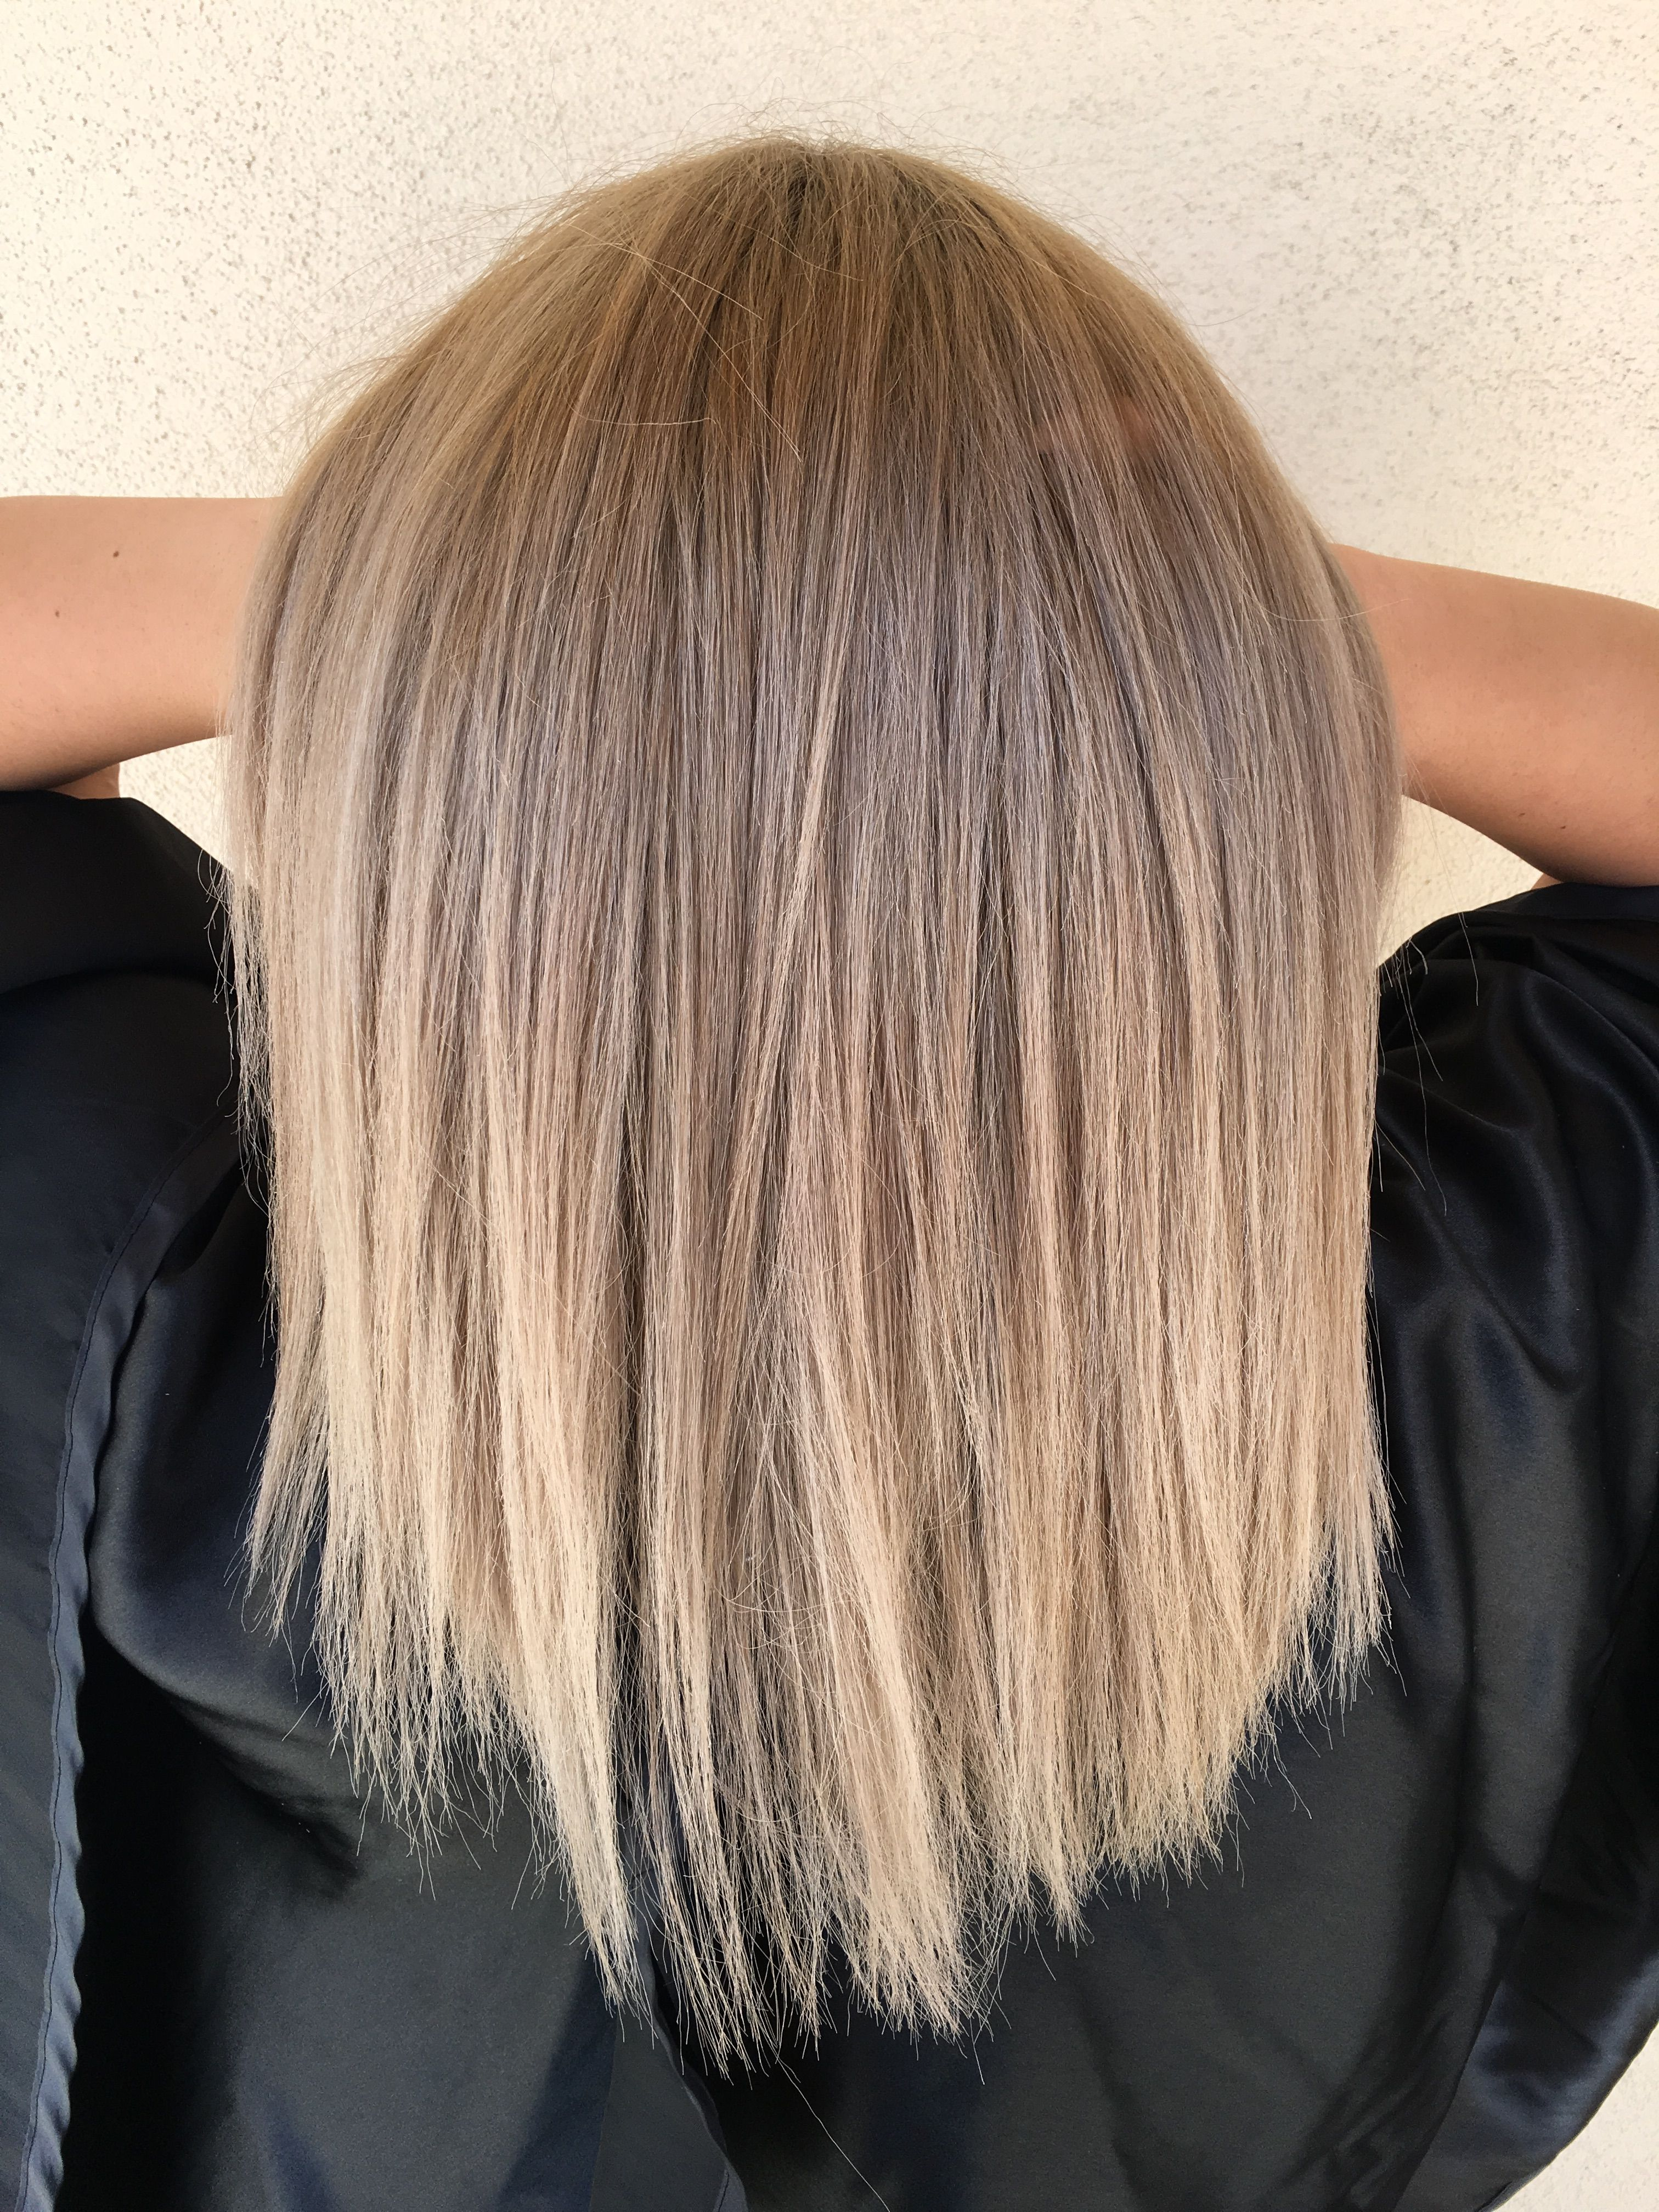 Blonde Ombre Hair Styles Blonde Ombre Ombre Hair Blonde